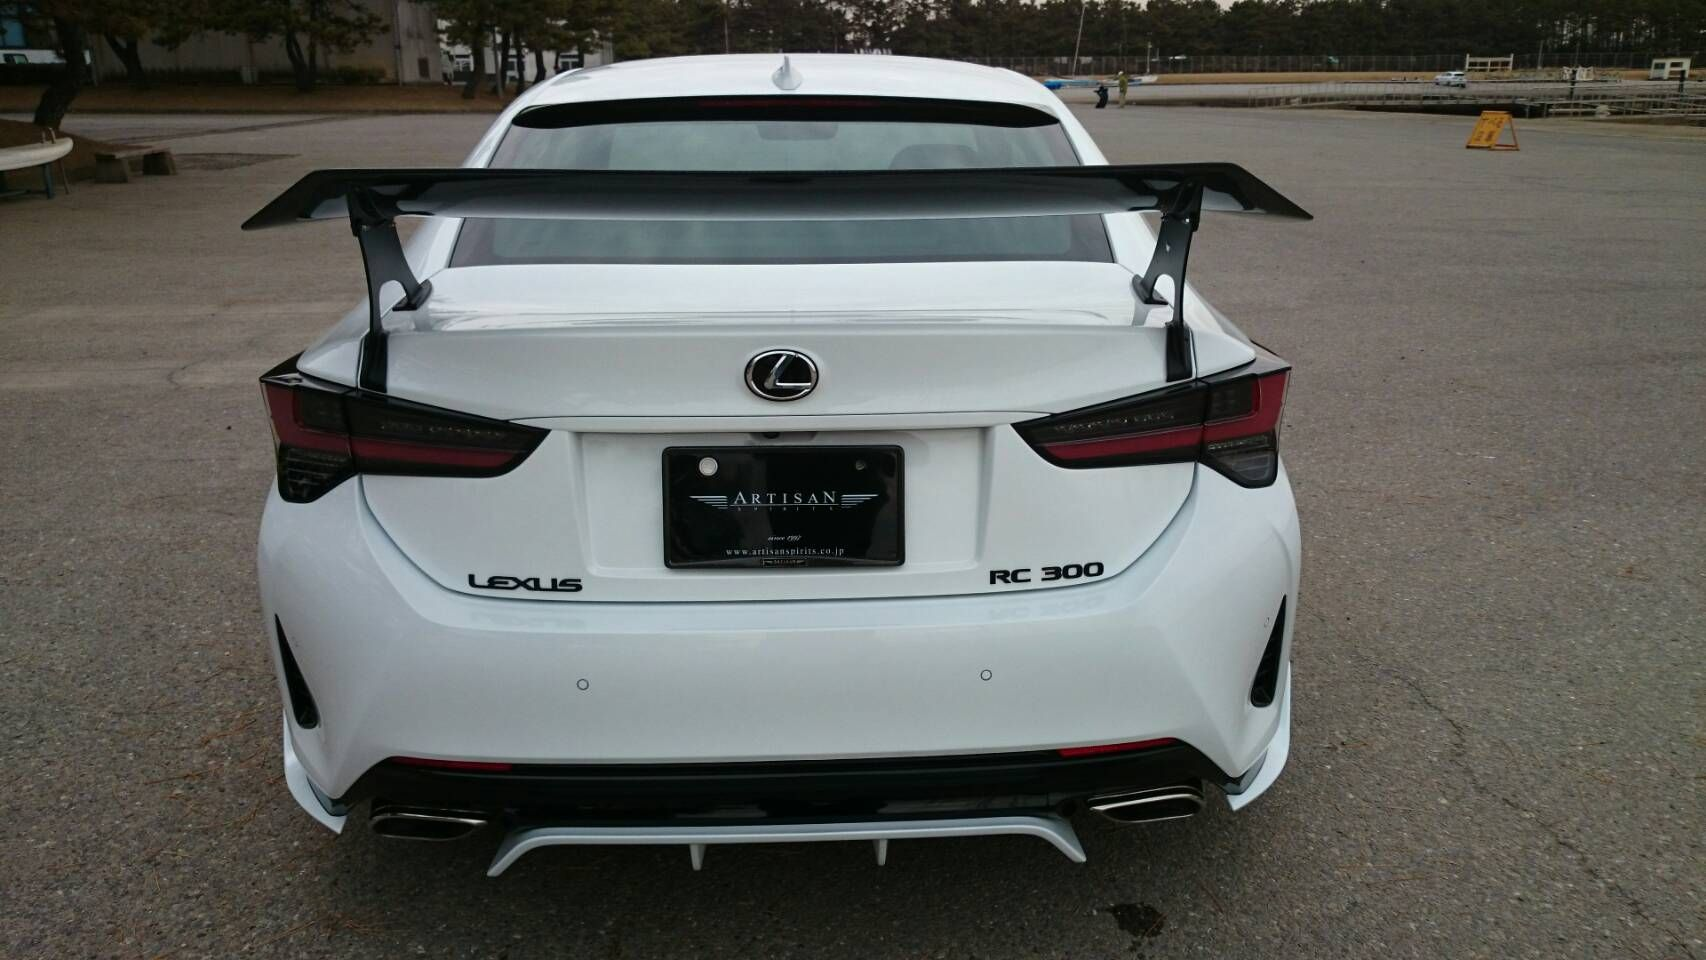 This New Gt Wing For The Lexus Rc300 From Artisan Spirits Makes All The Difference New Lexus Lexus Car Goals